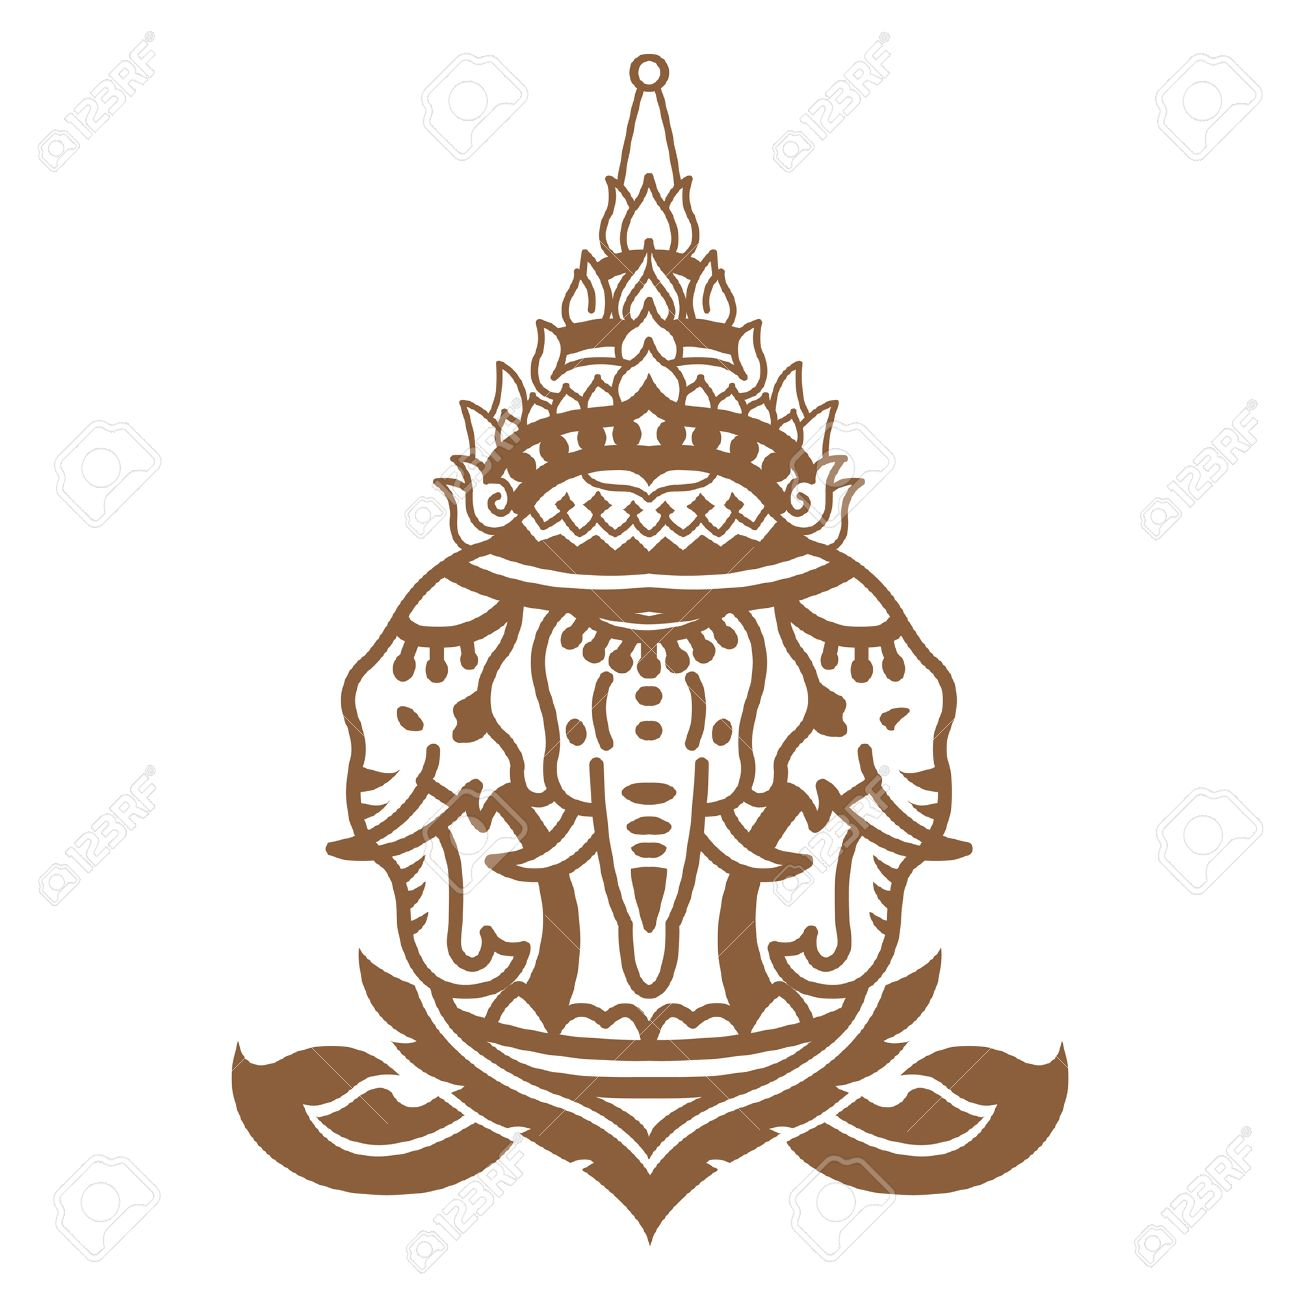 1300x1300 Thai Elephant Royalty Free Cliparts, Vectors, And Stock